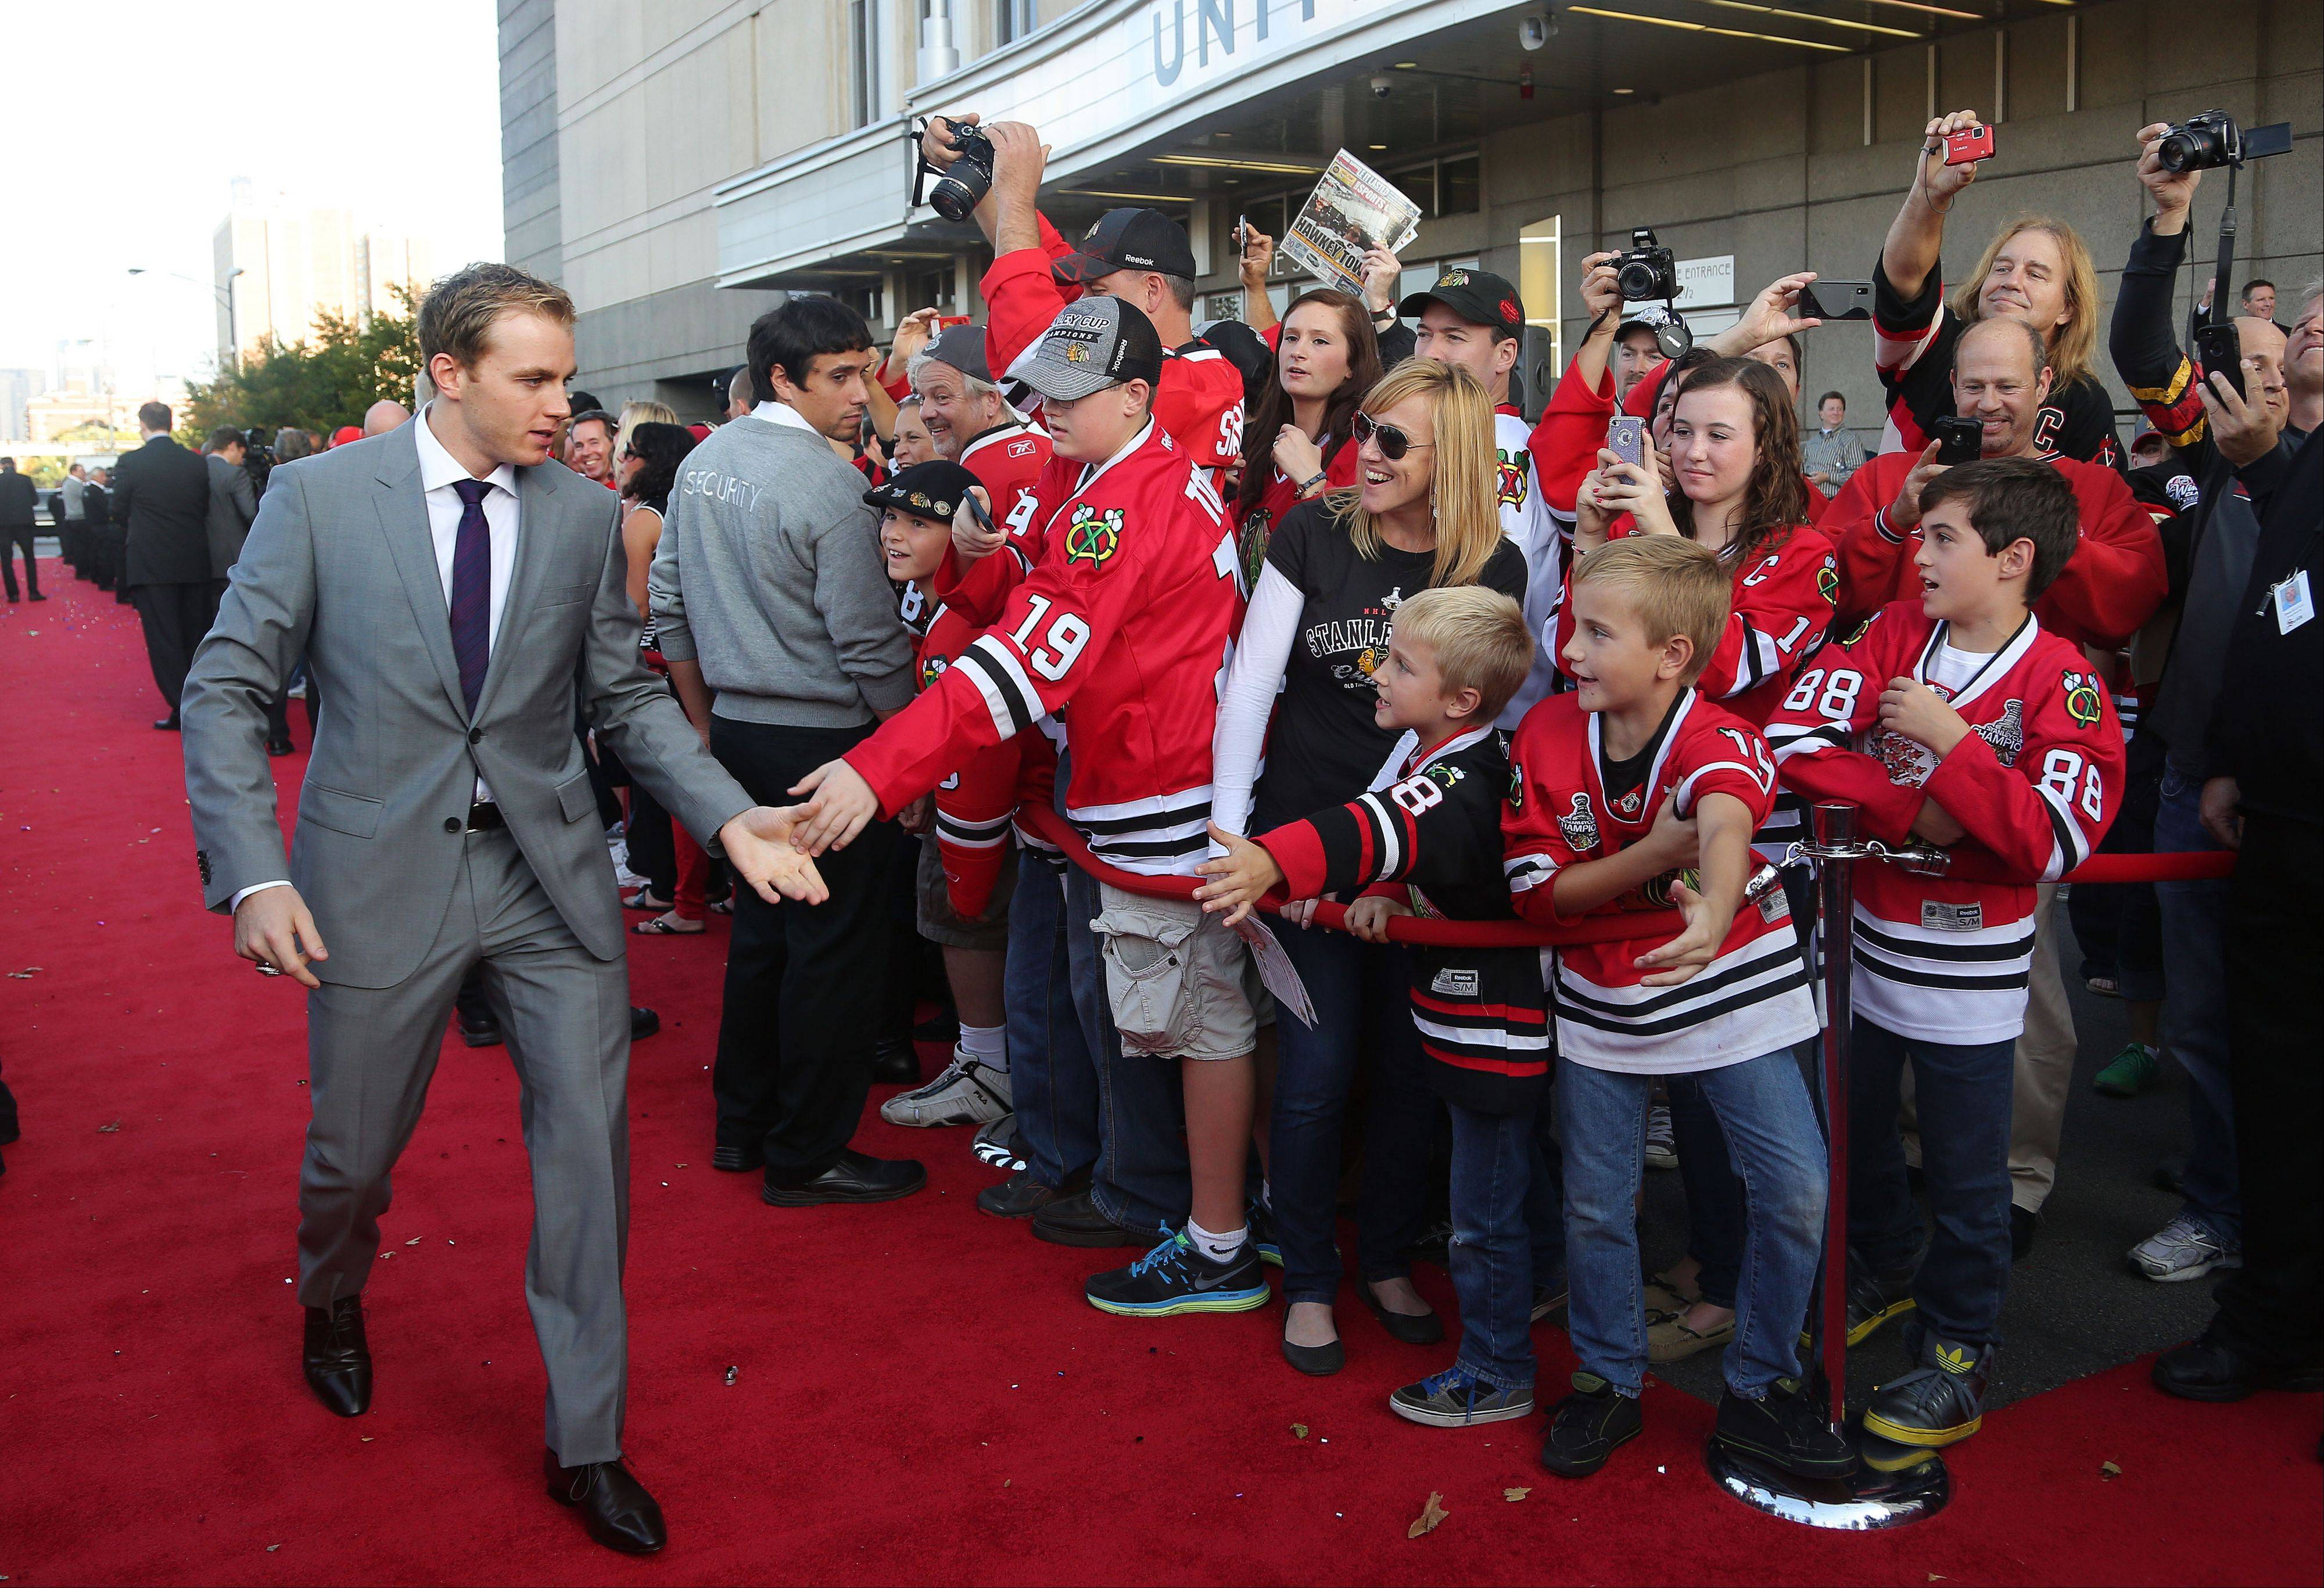 Chicago Blackhawks Patrick Kane high-fives fans.